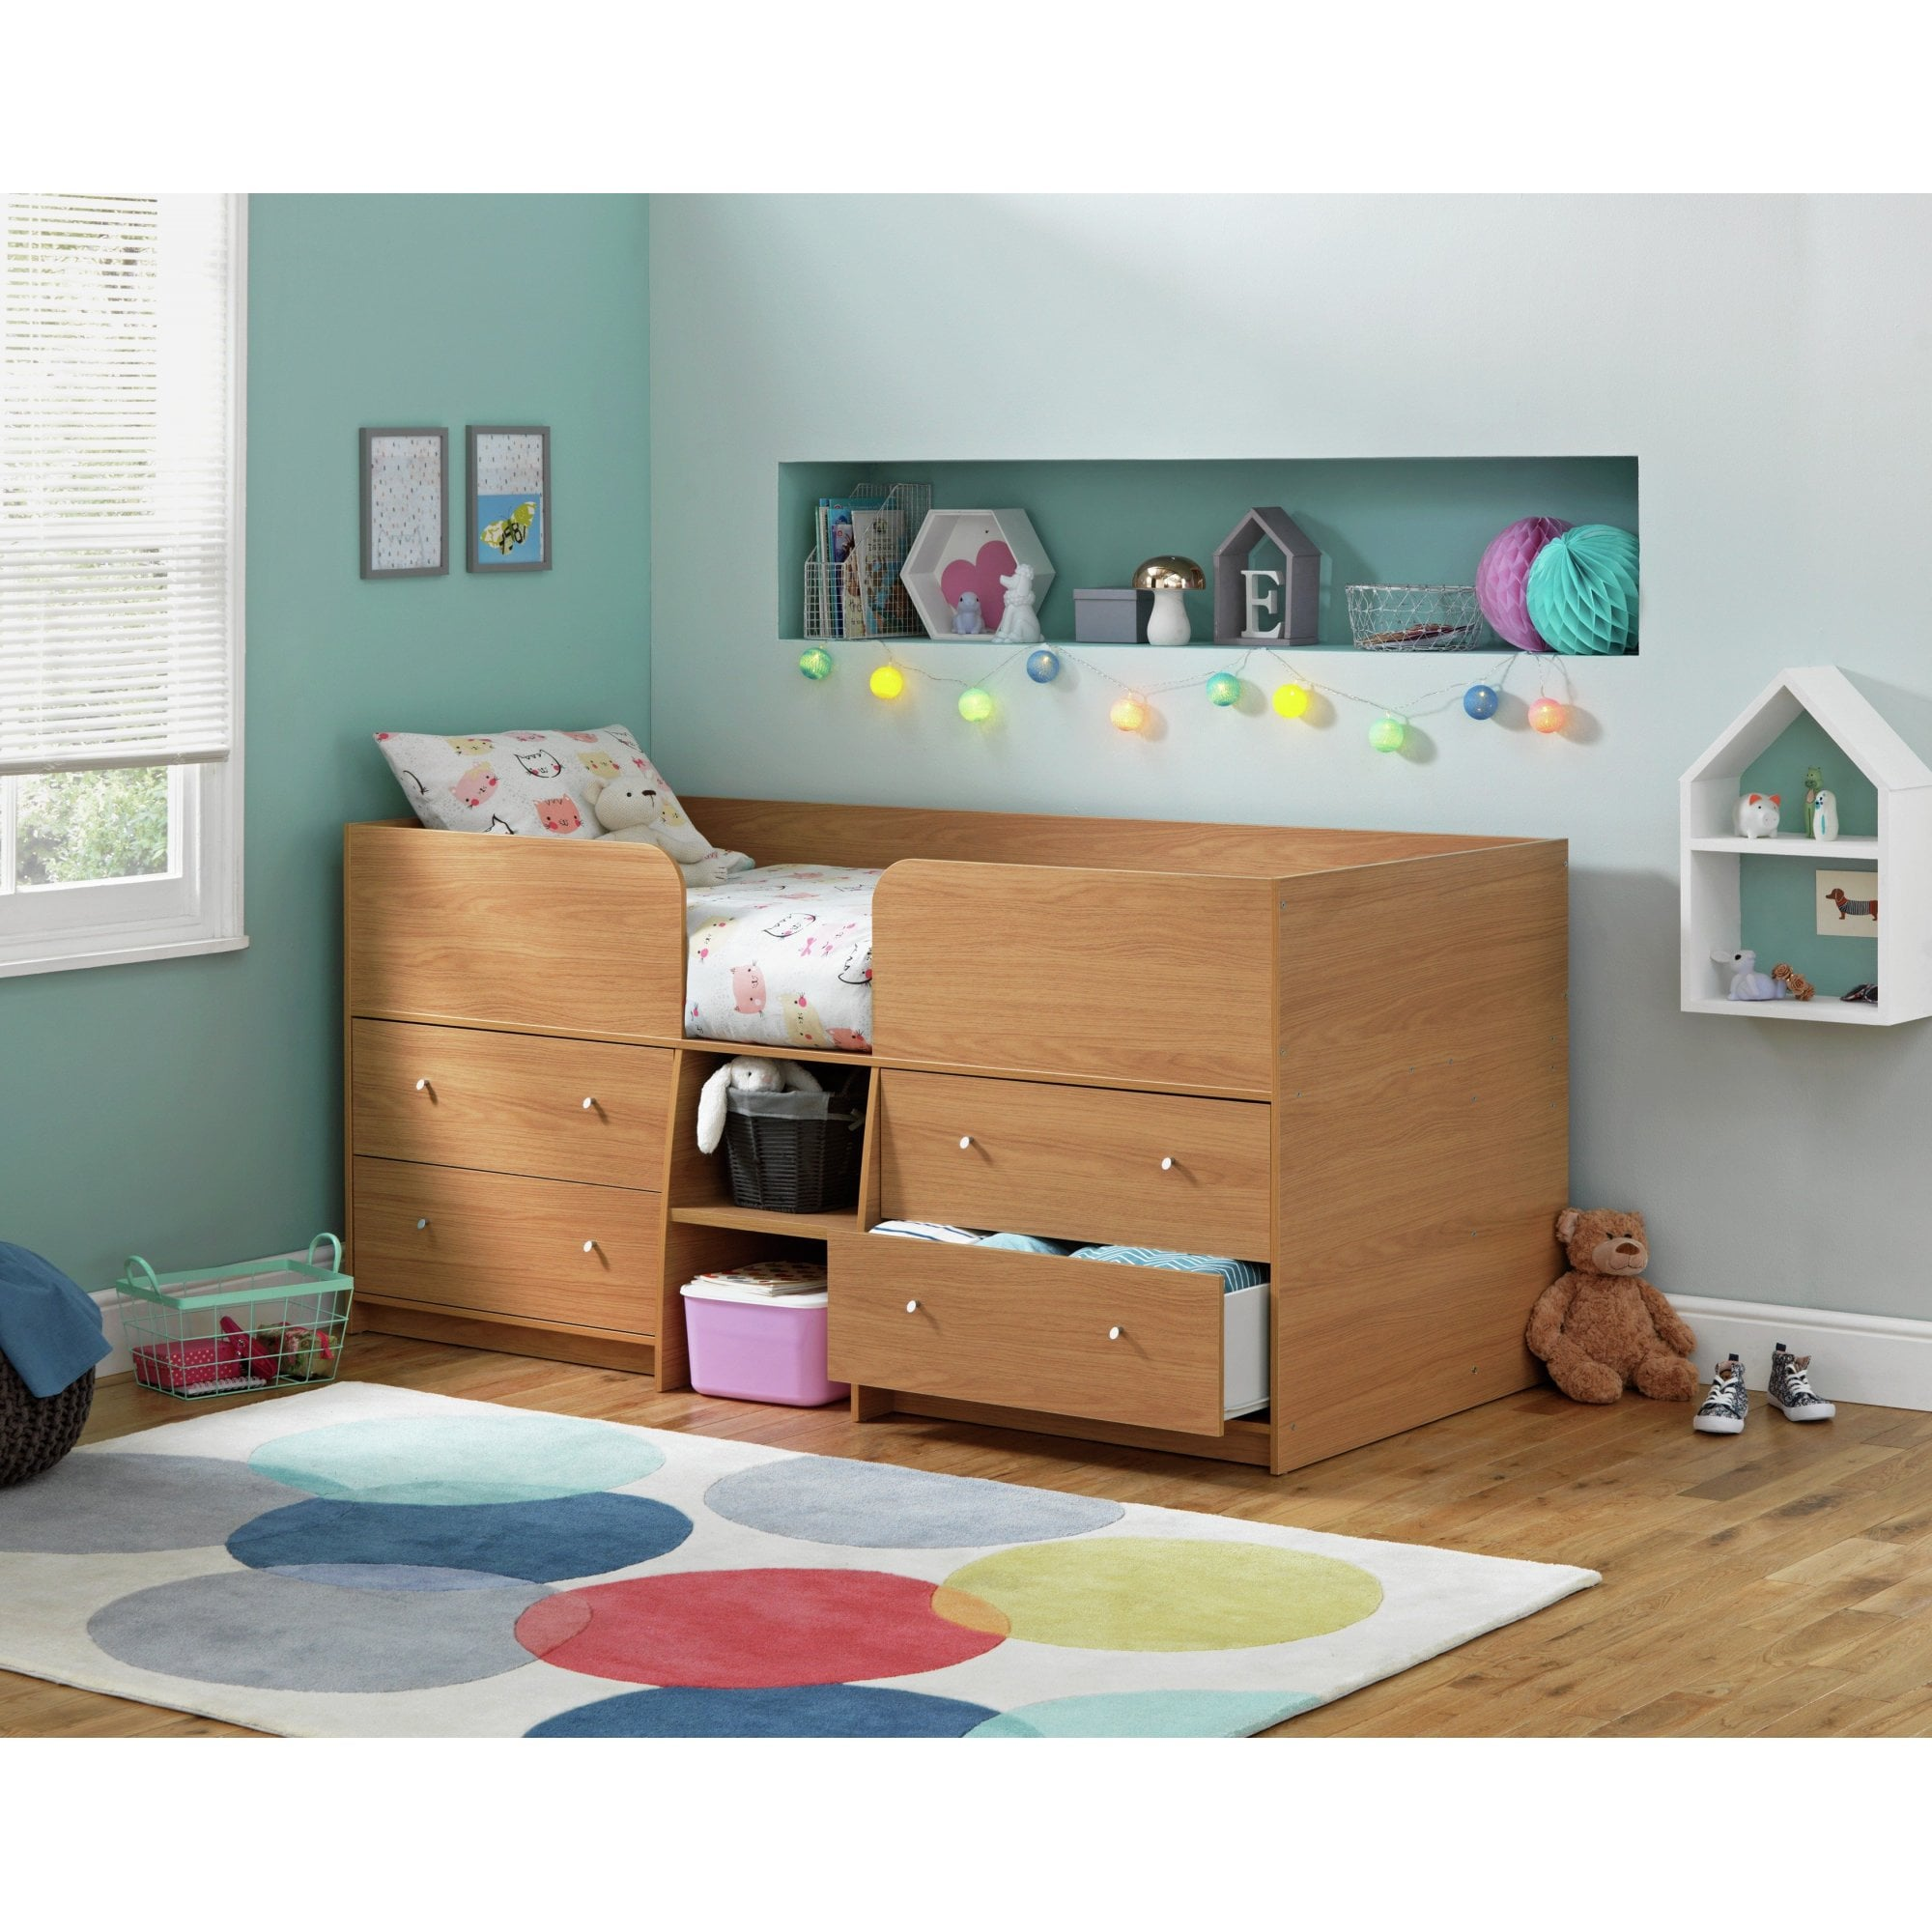 Picture of: Simply Beds Mannie Midsleeper Storage Cabin Bed Children S Beds From Simply Beds Uk